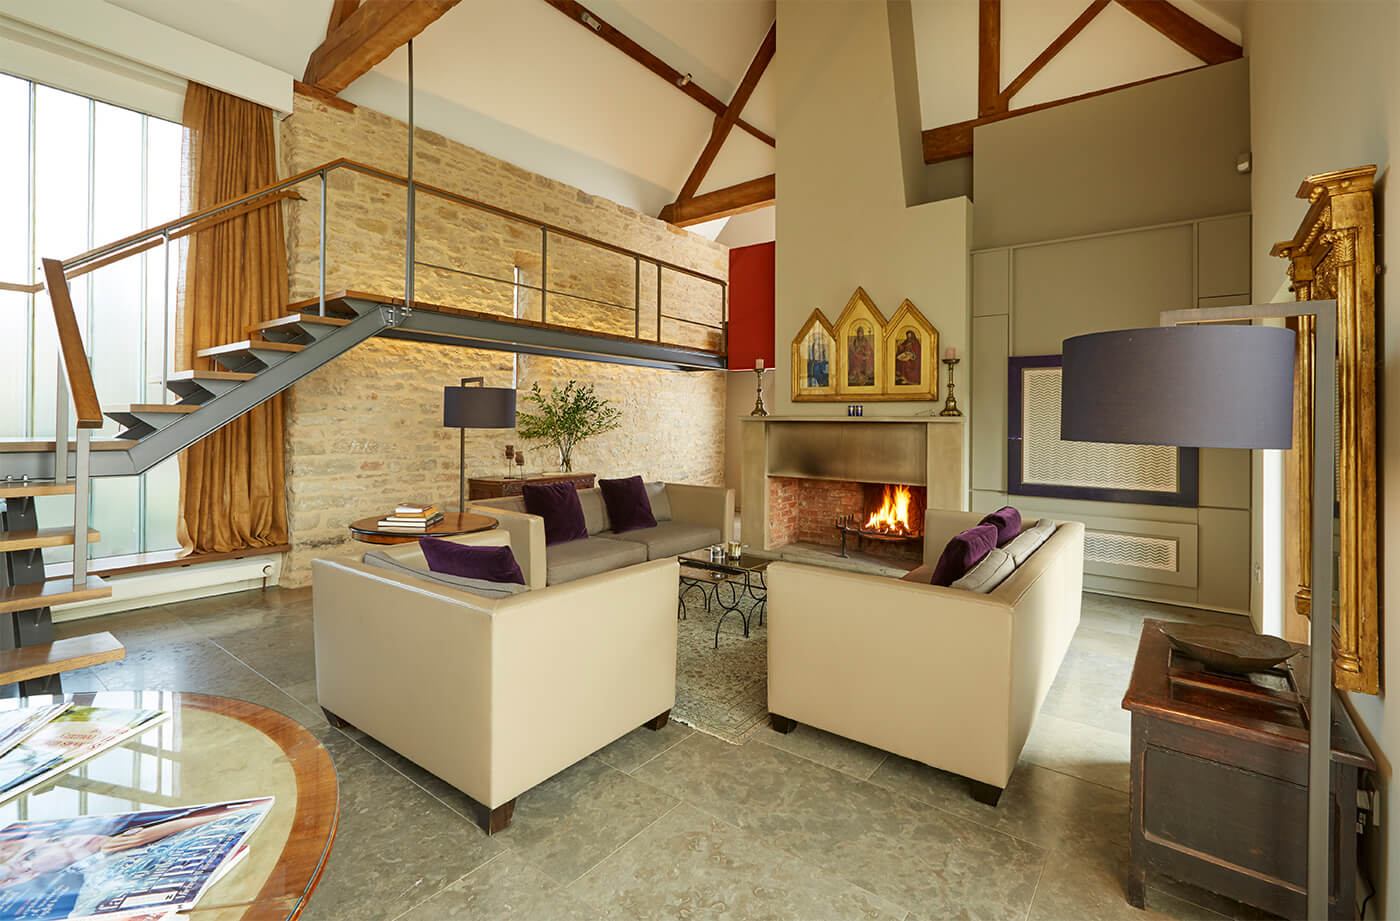 - Whistlers Barn is a beautiful example of a building that has recently been converted and extended to offer greater living areas while staying true to the elements that give this period property its charm.The original part of this inviting property is believed to date back to the 1800s and is nestled in an Oxfordshire village that plays host to a surrounding perfectly befitting of a home of this stature. As the name suggests, part of this home was a barn at some stage and the transformation into a stunning 3000 sq ft home is truly inspiring.